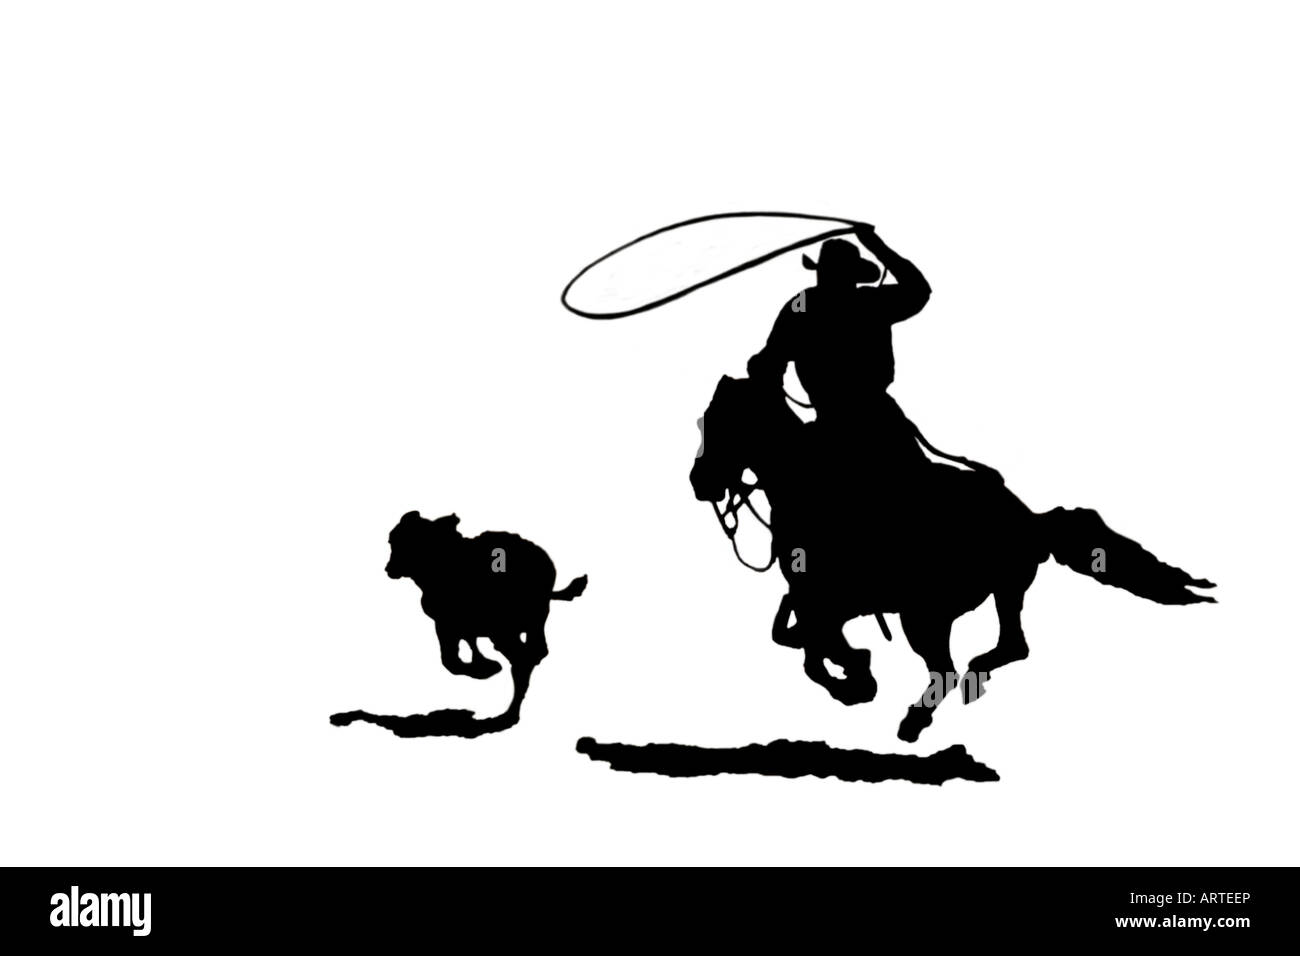 Black and white silhouette cutout of cowboy chasing after calf with lasso at a rodeo - Stock Image